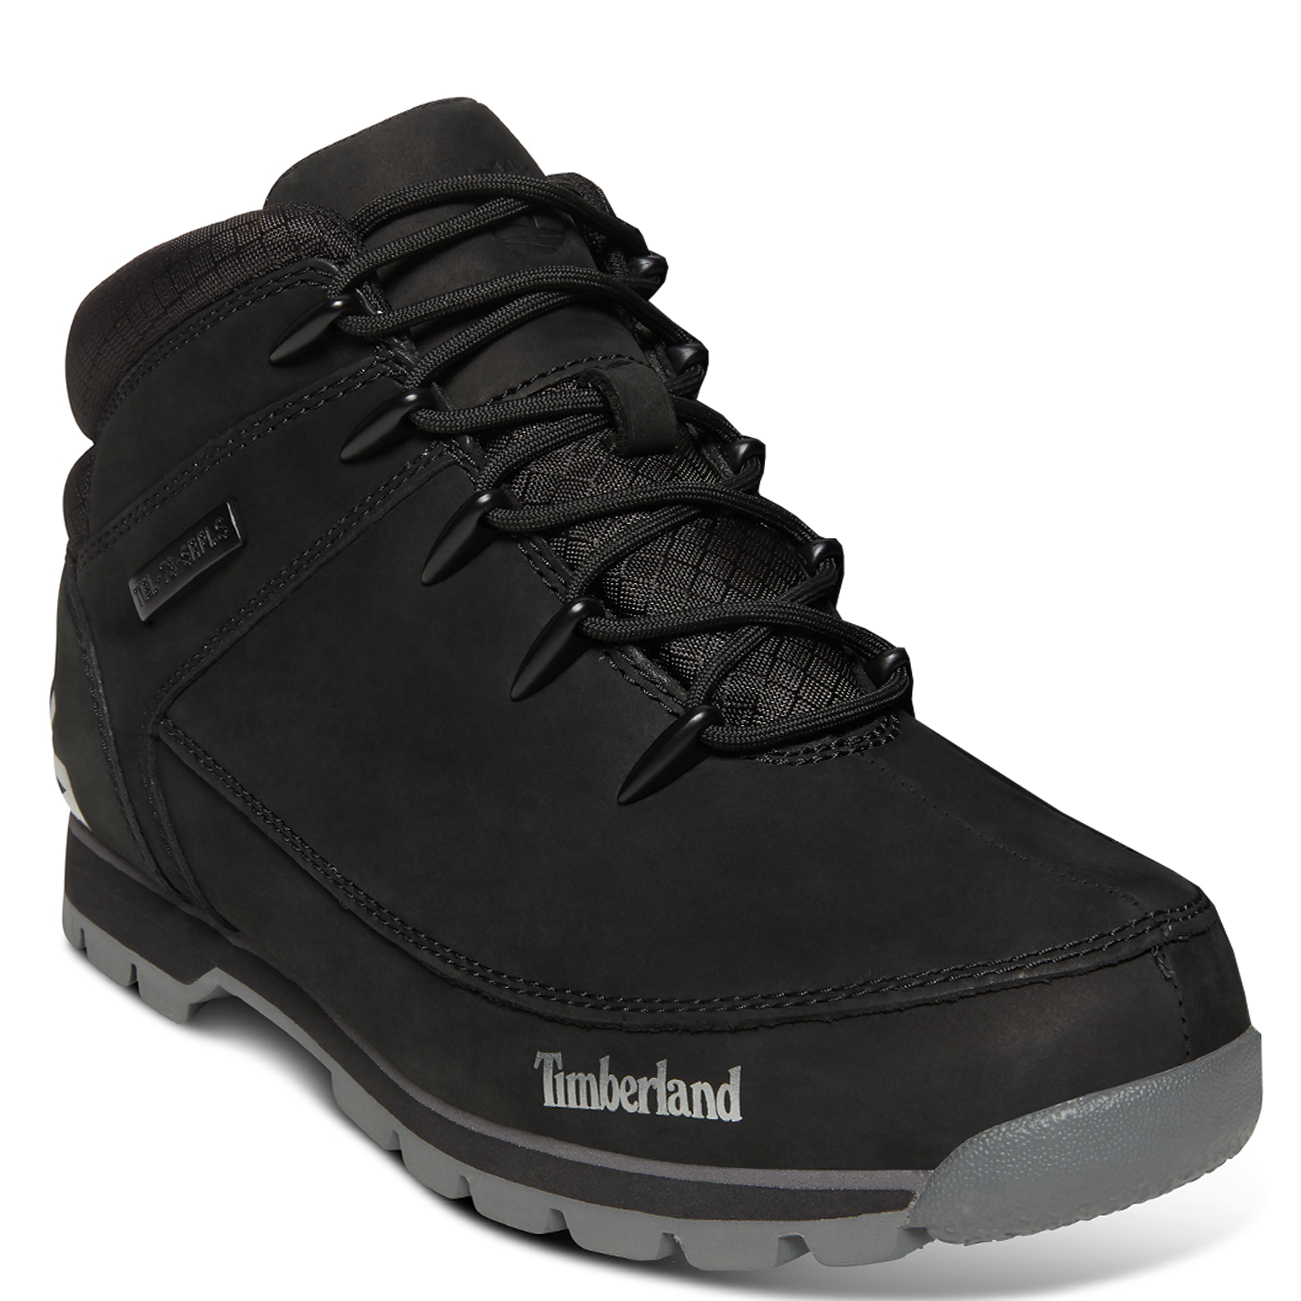 Timberland Mens Euro Sprint Hiker Walking Winter Leather Ankle Boots Jet Black 11